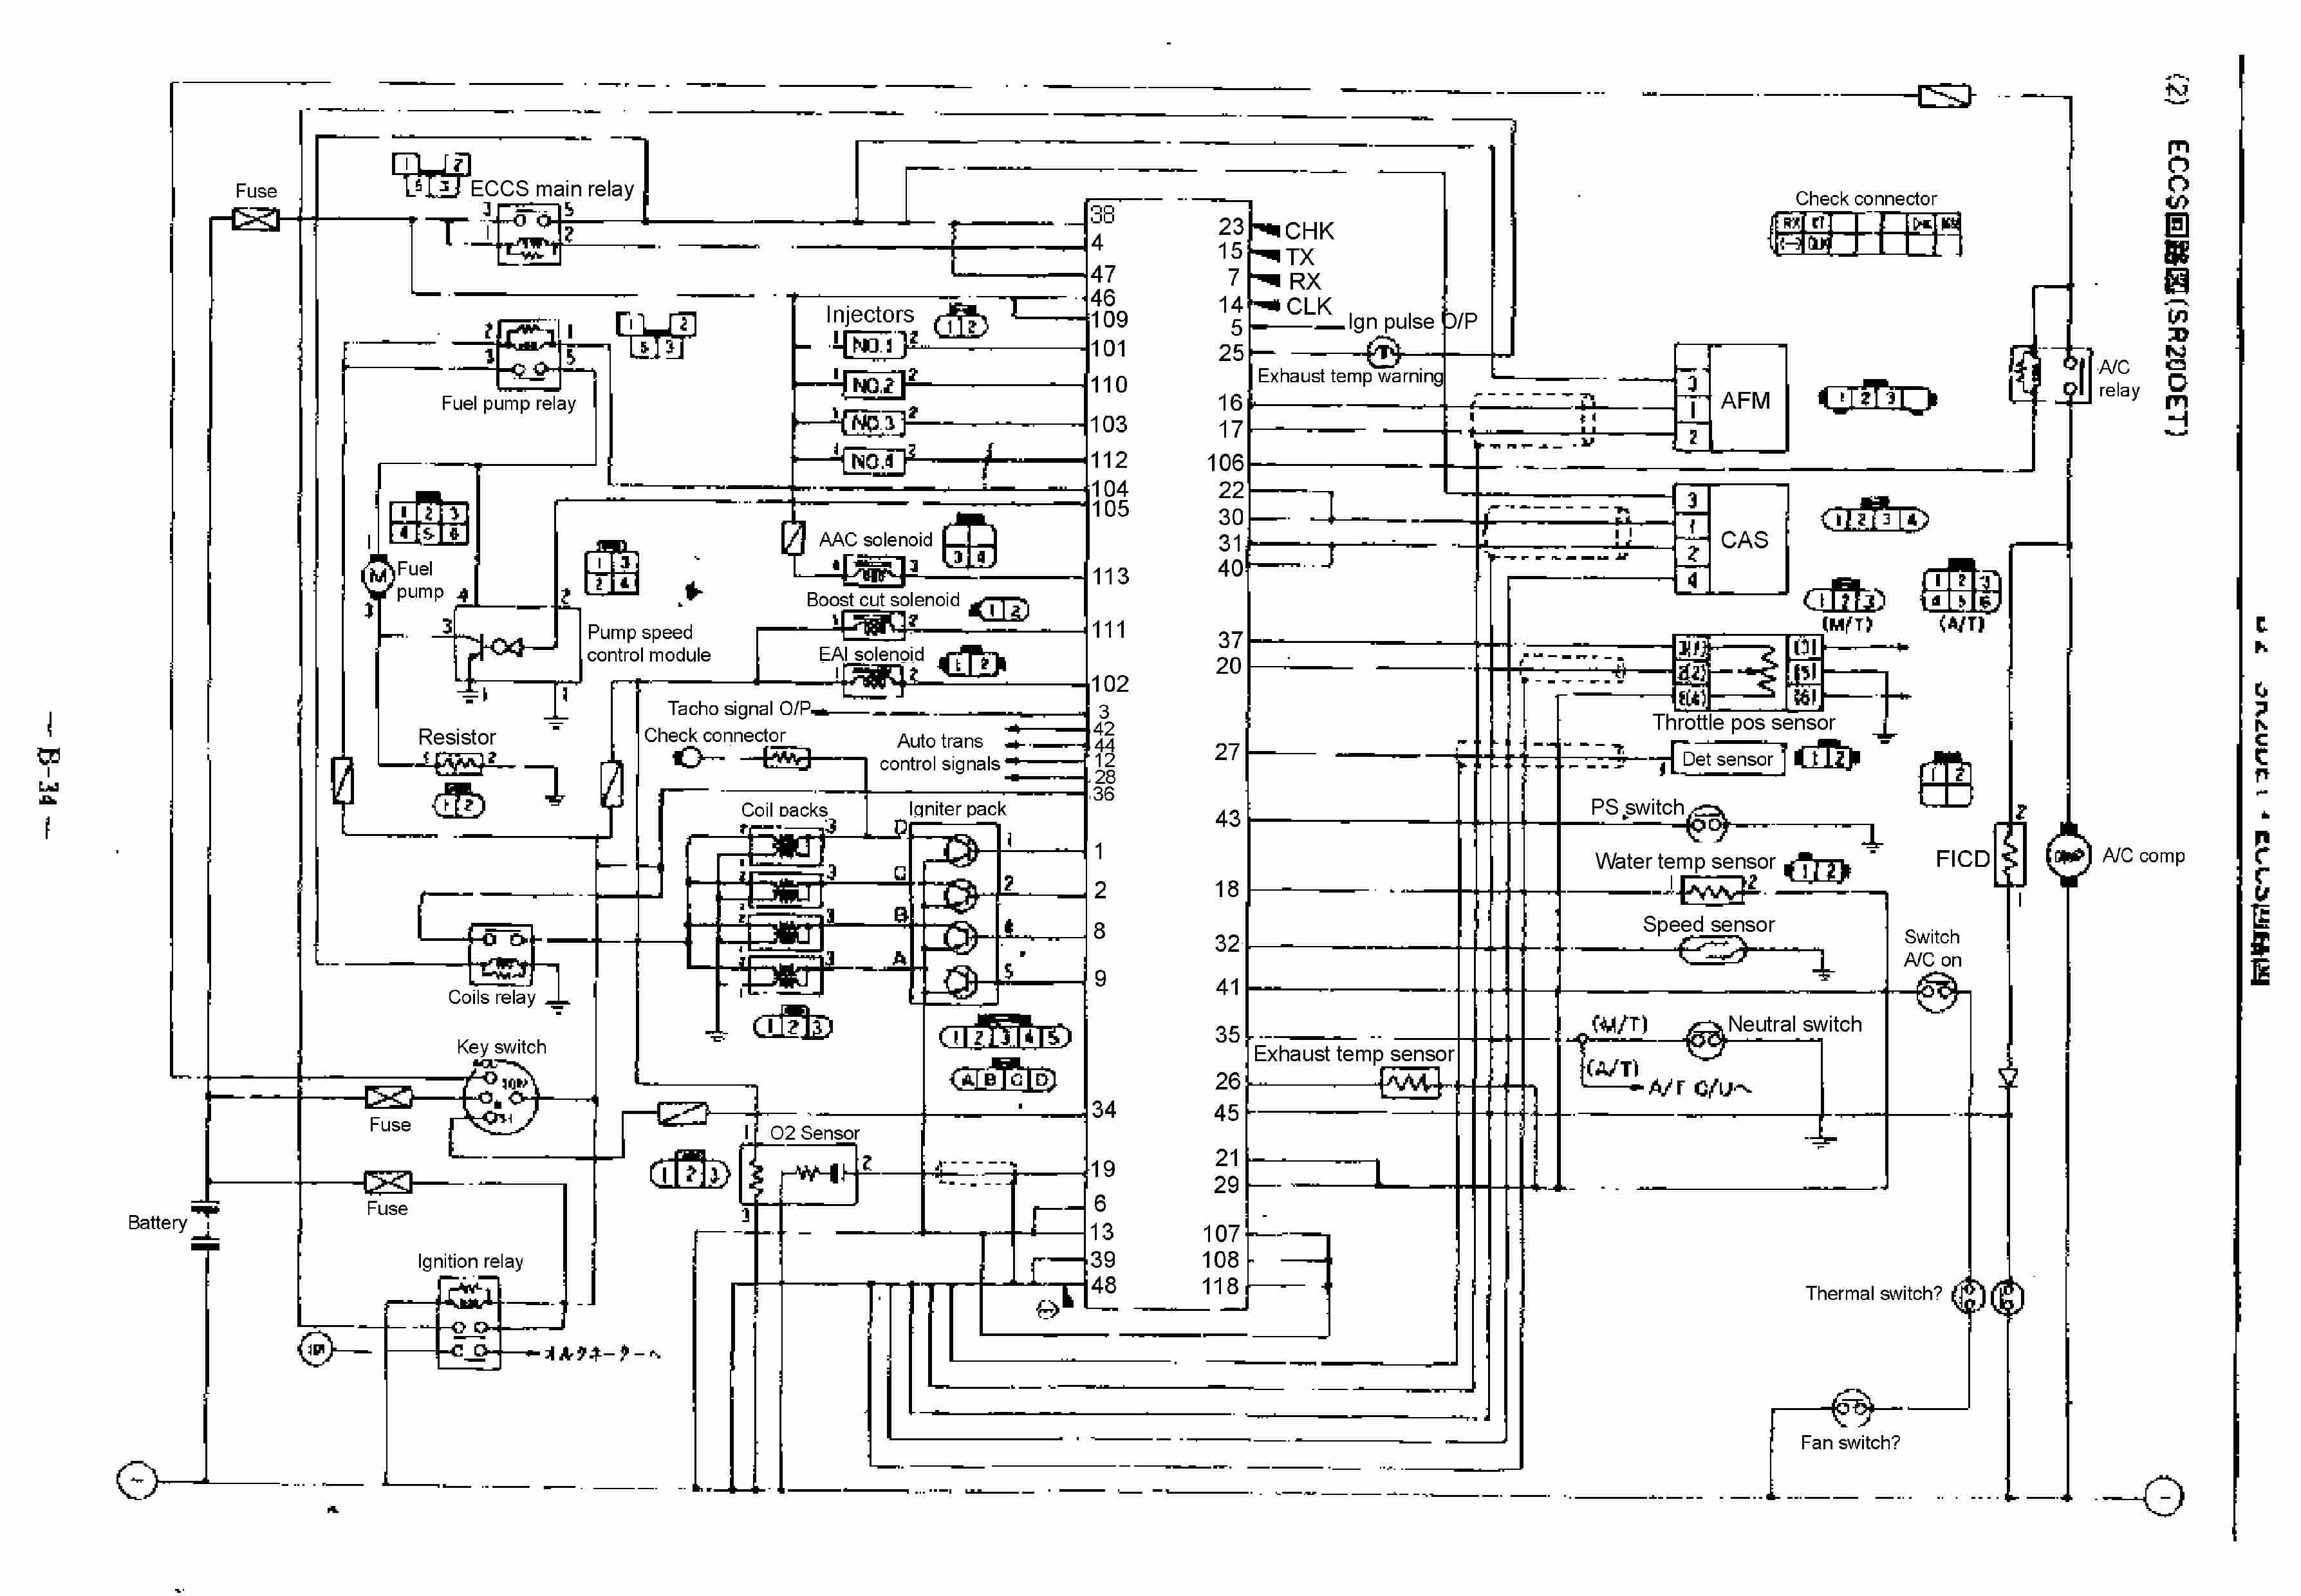 bluebird bus wiring diagrams wiring diagram data todaybluebird wiring schematic wiring diagram gp bluebird bus wiring diagrams bluebird bus wiring diagrams